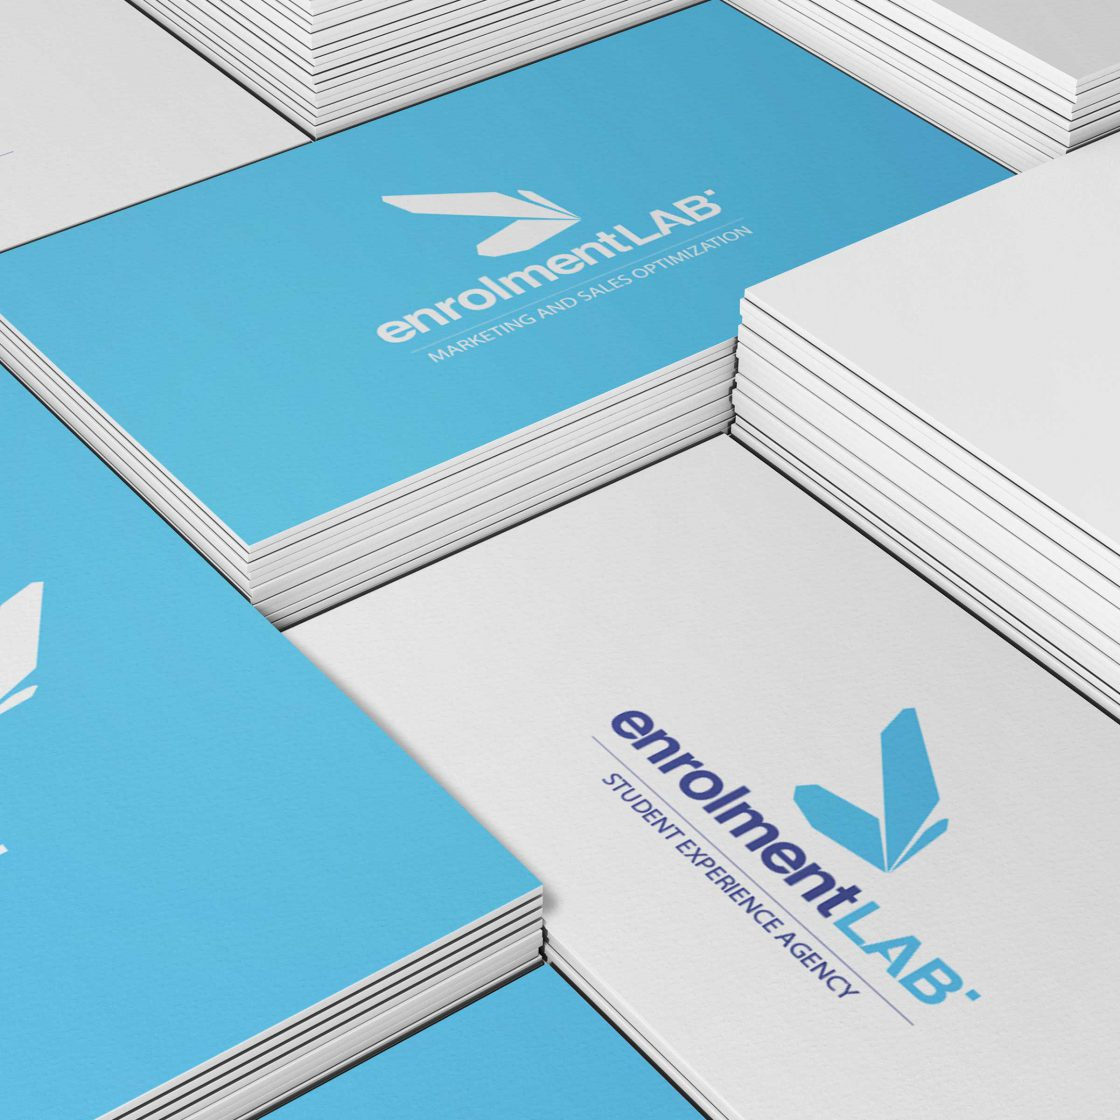 Enrolment LAB brand white and blue business cards 300 gsm